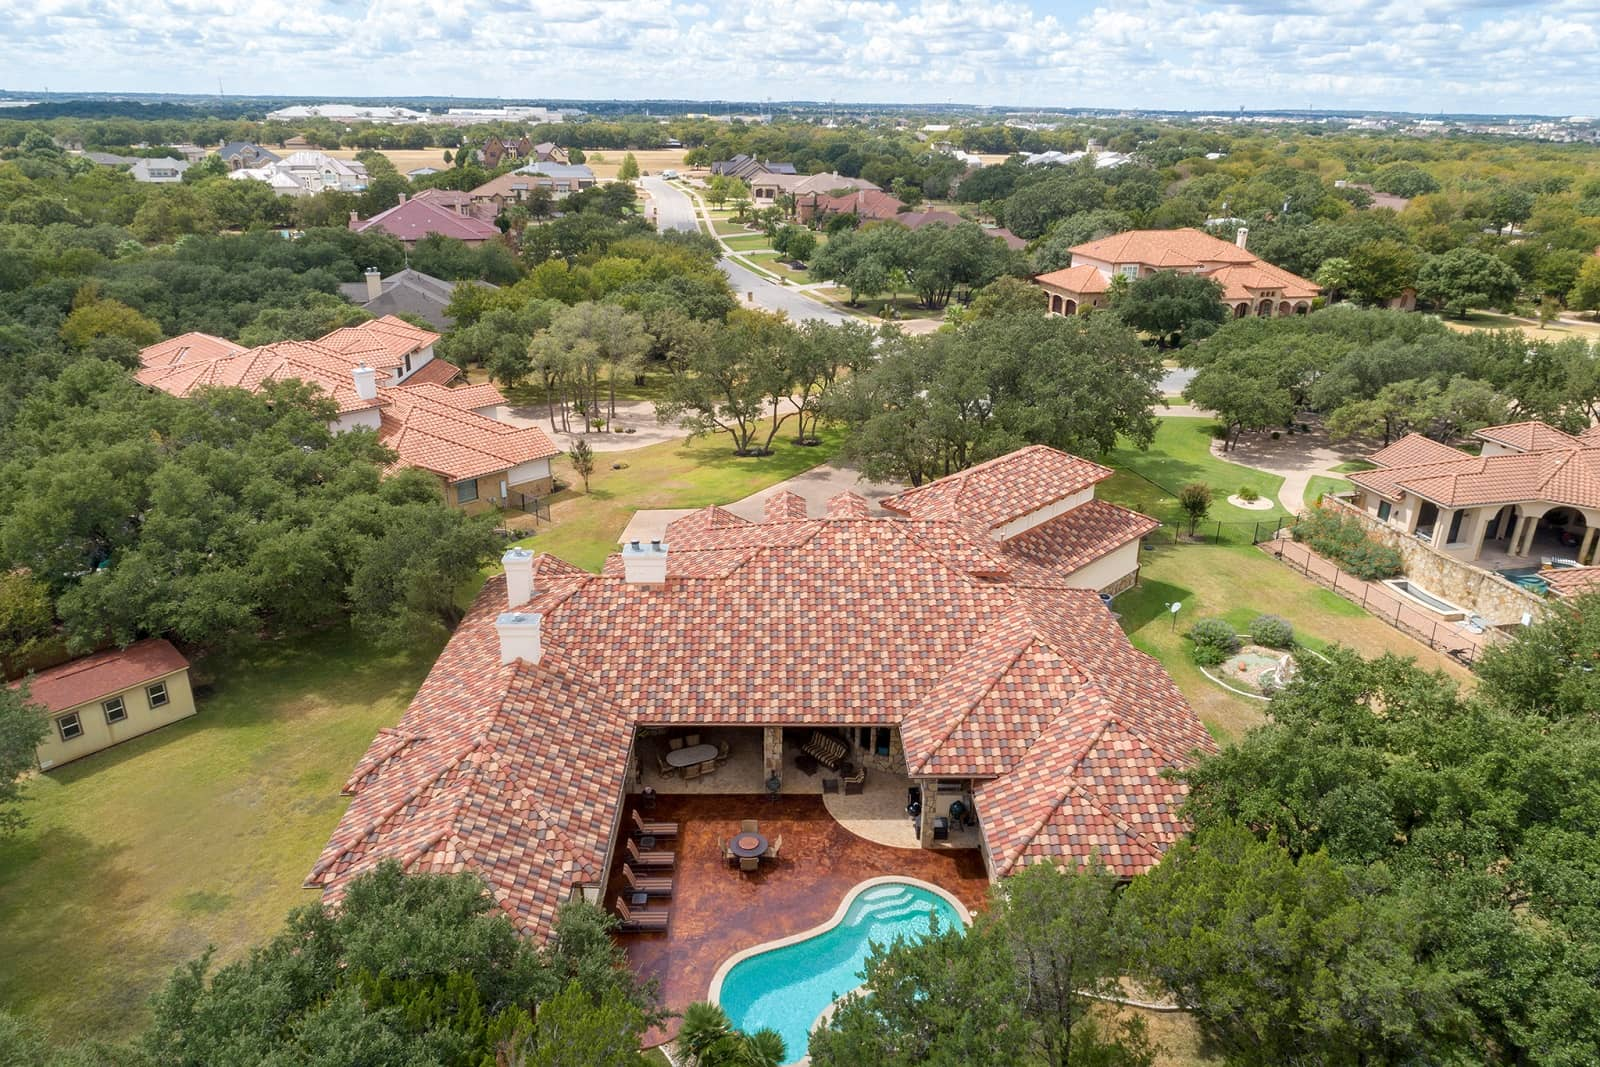 Real Estate Photography in Cedar Park - TX - Aerial View